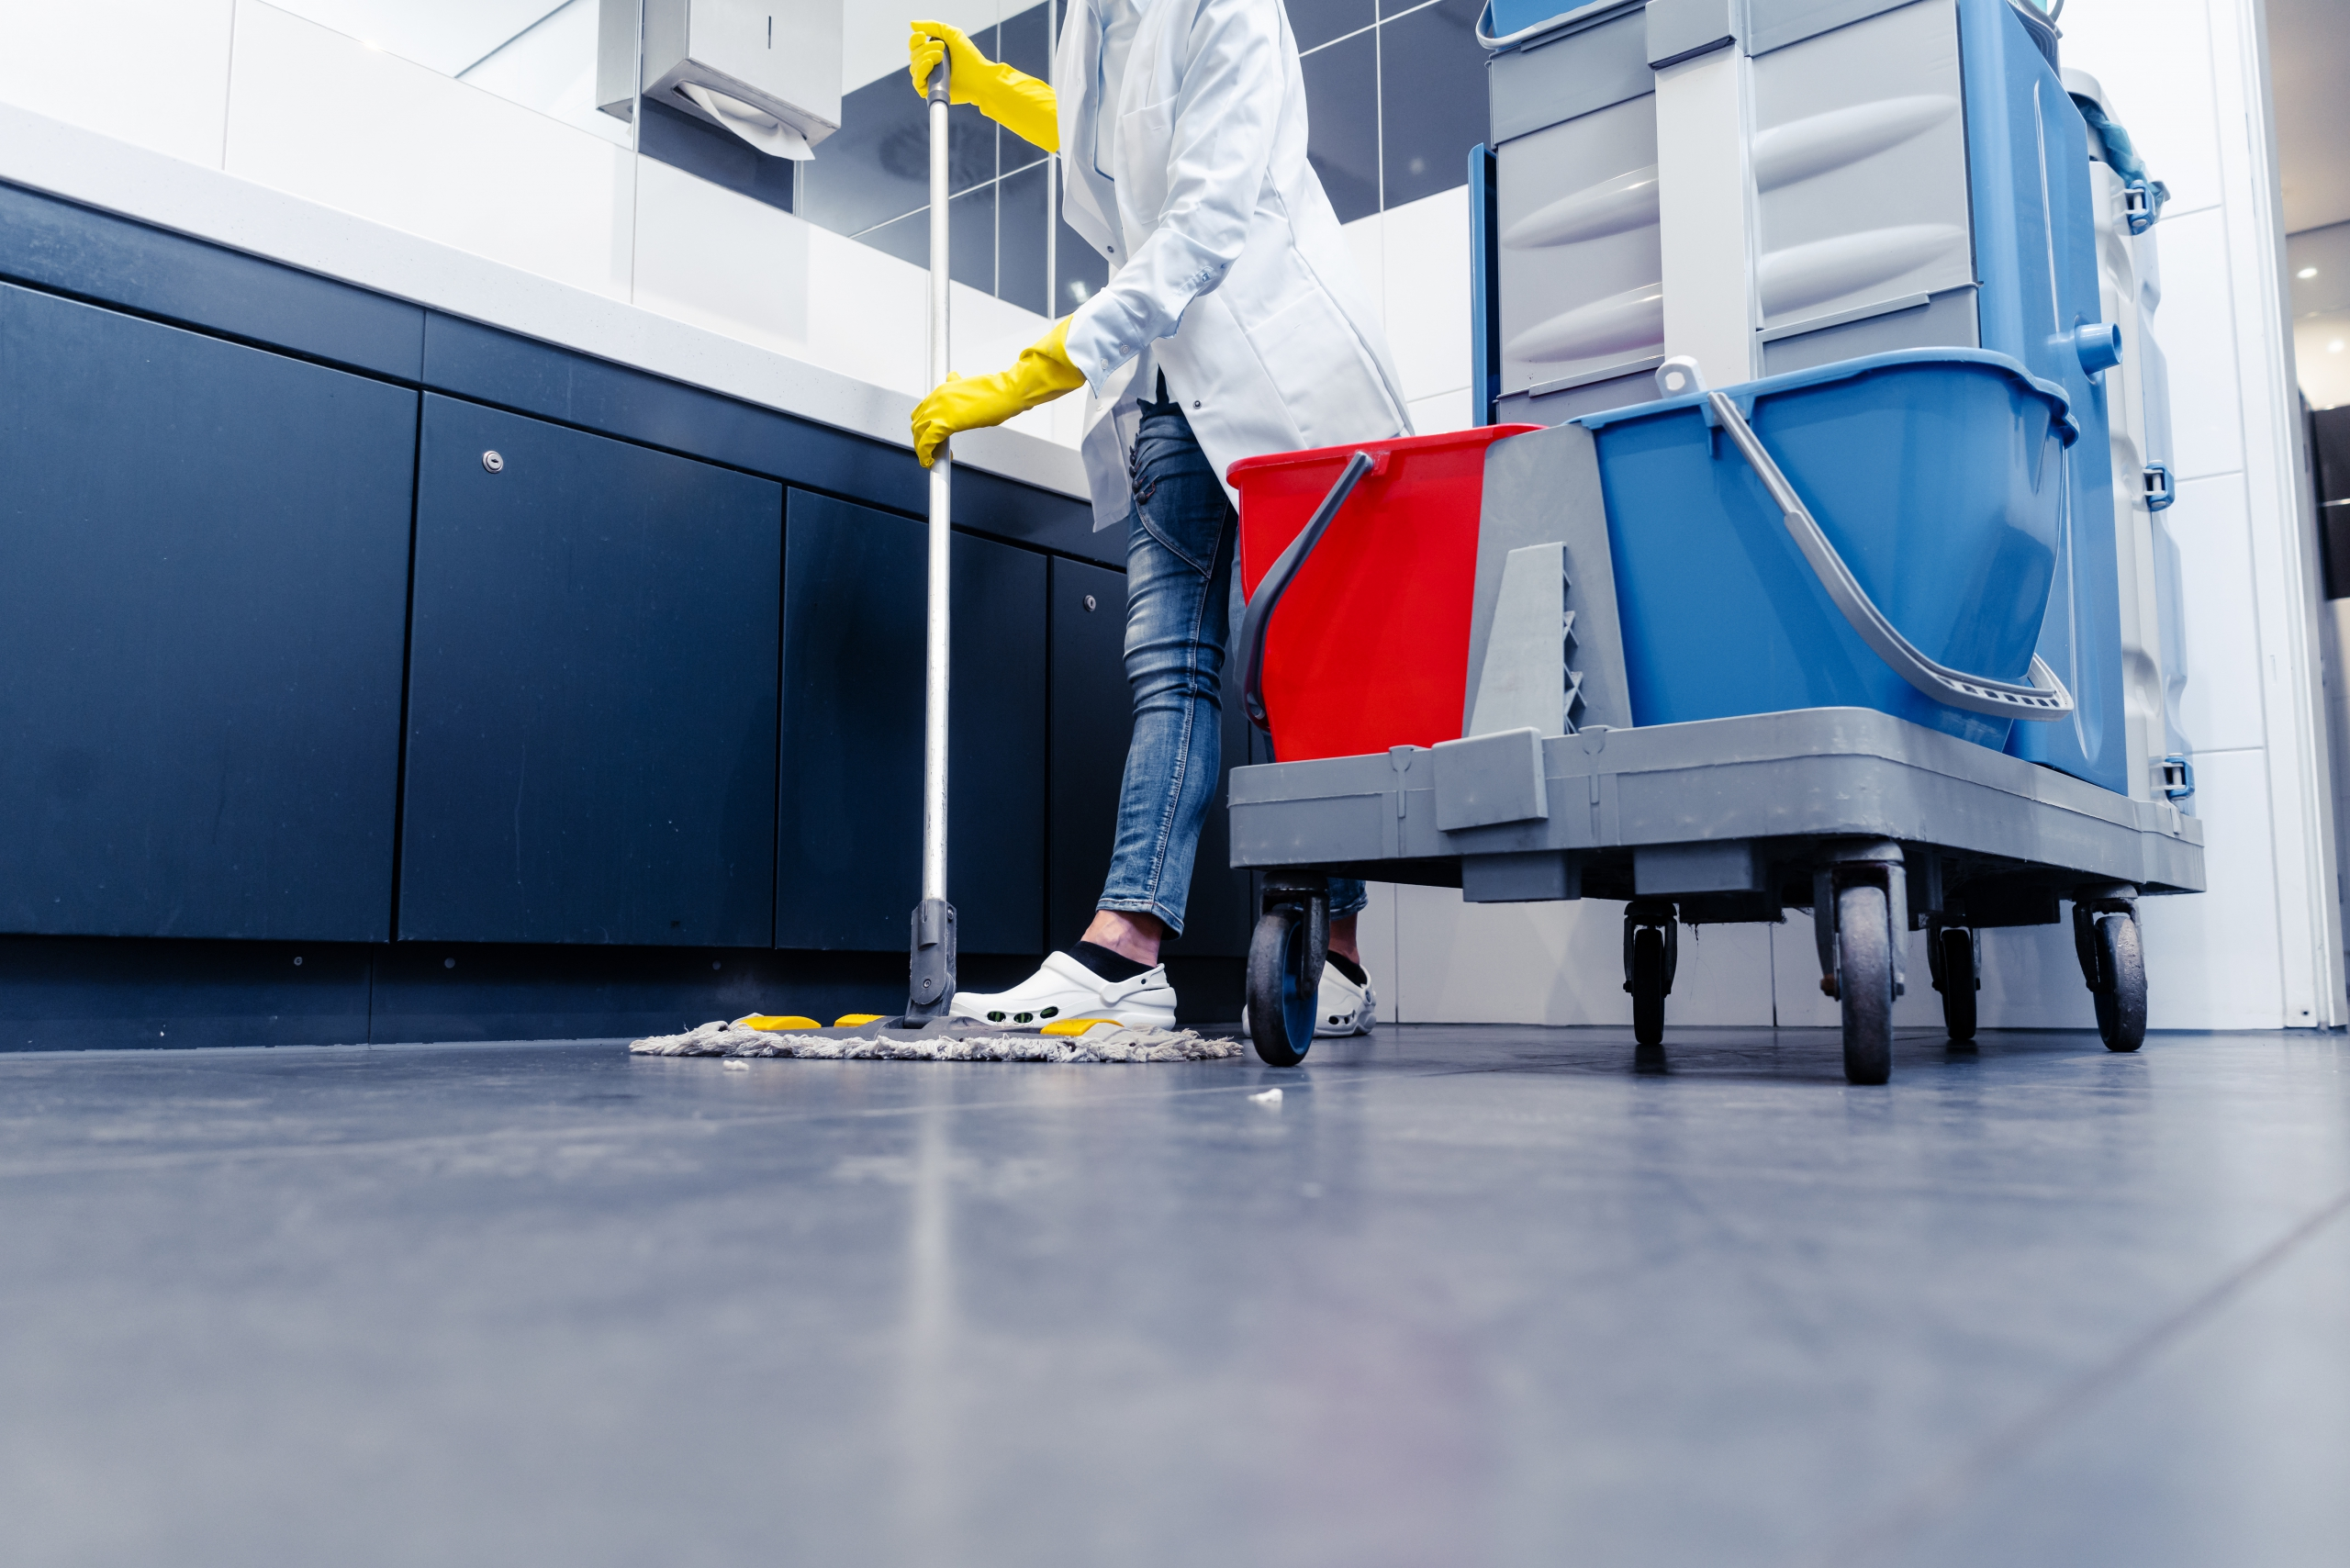 Commercial Cleaning Raleigh, NC